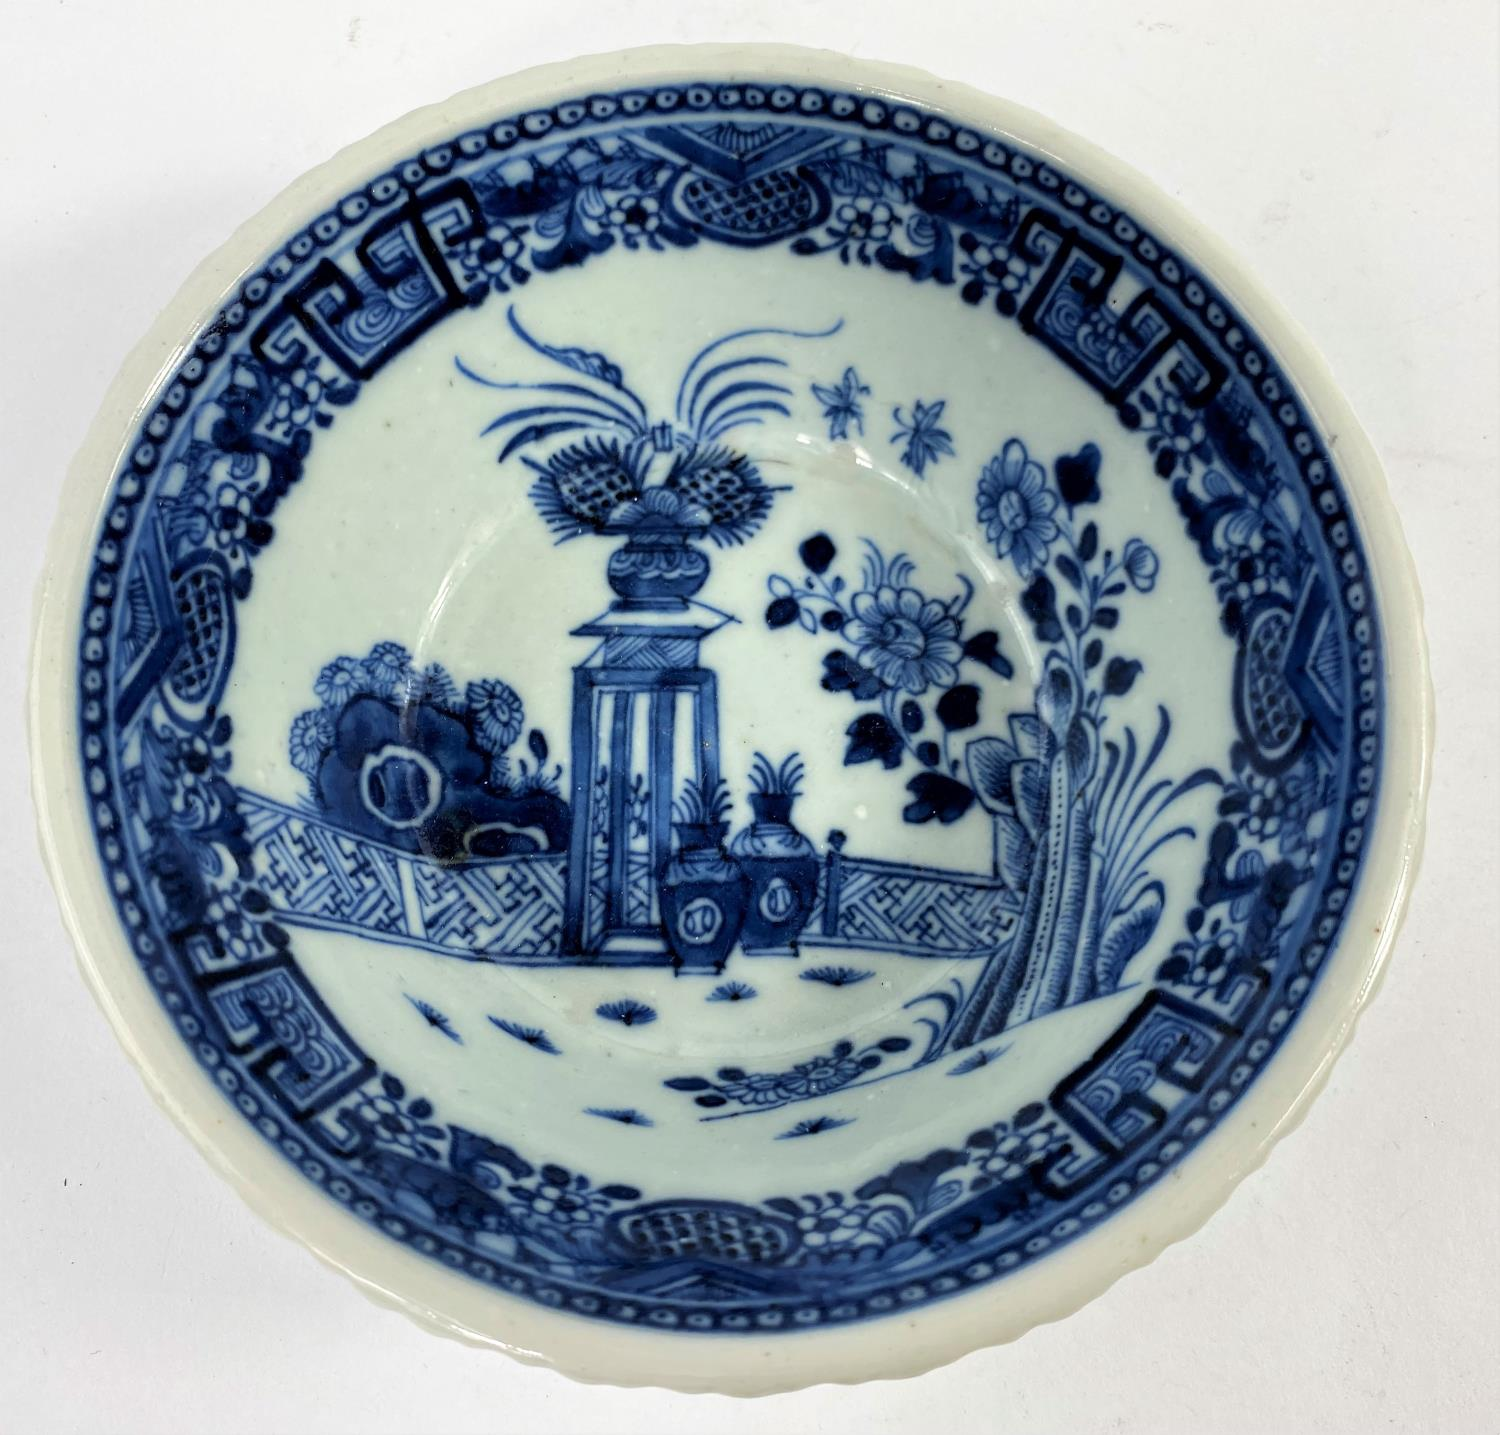 An 18th century Chinese blue and white porcelain bowl with pie crust rim decorated with antiques and